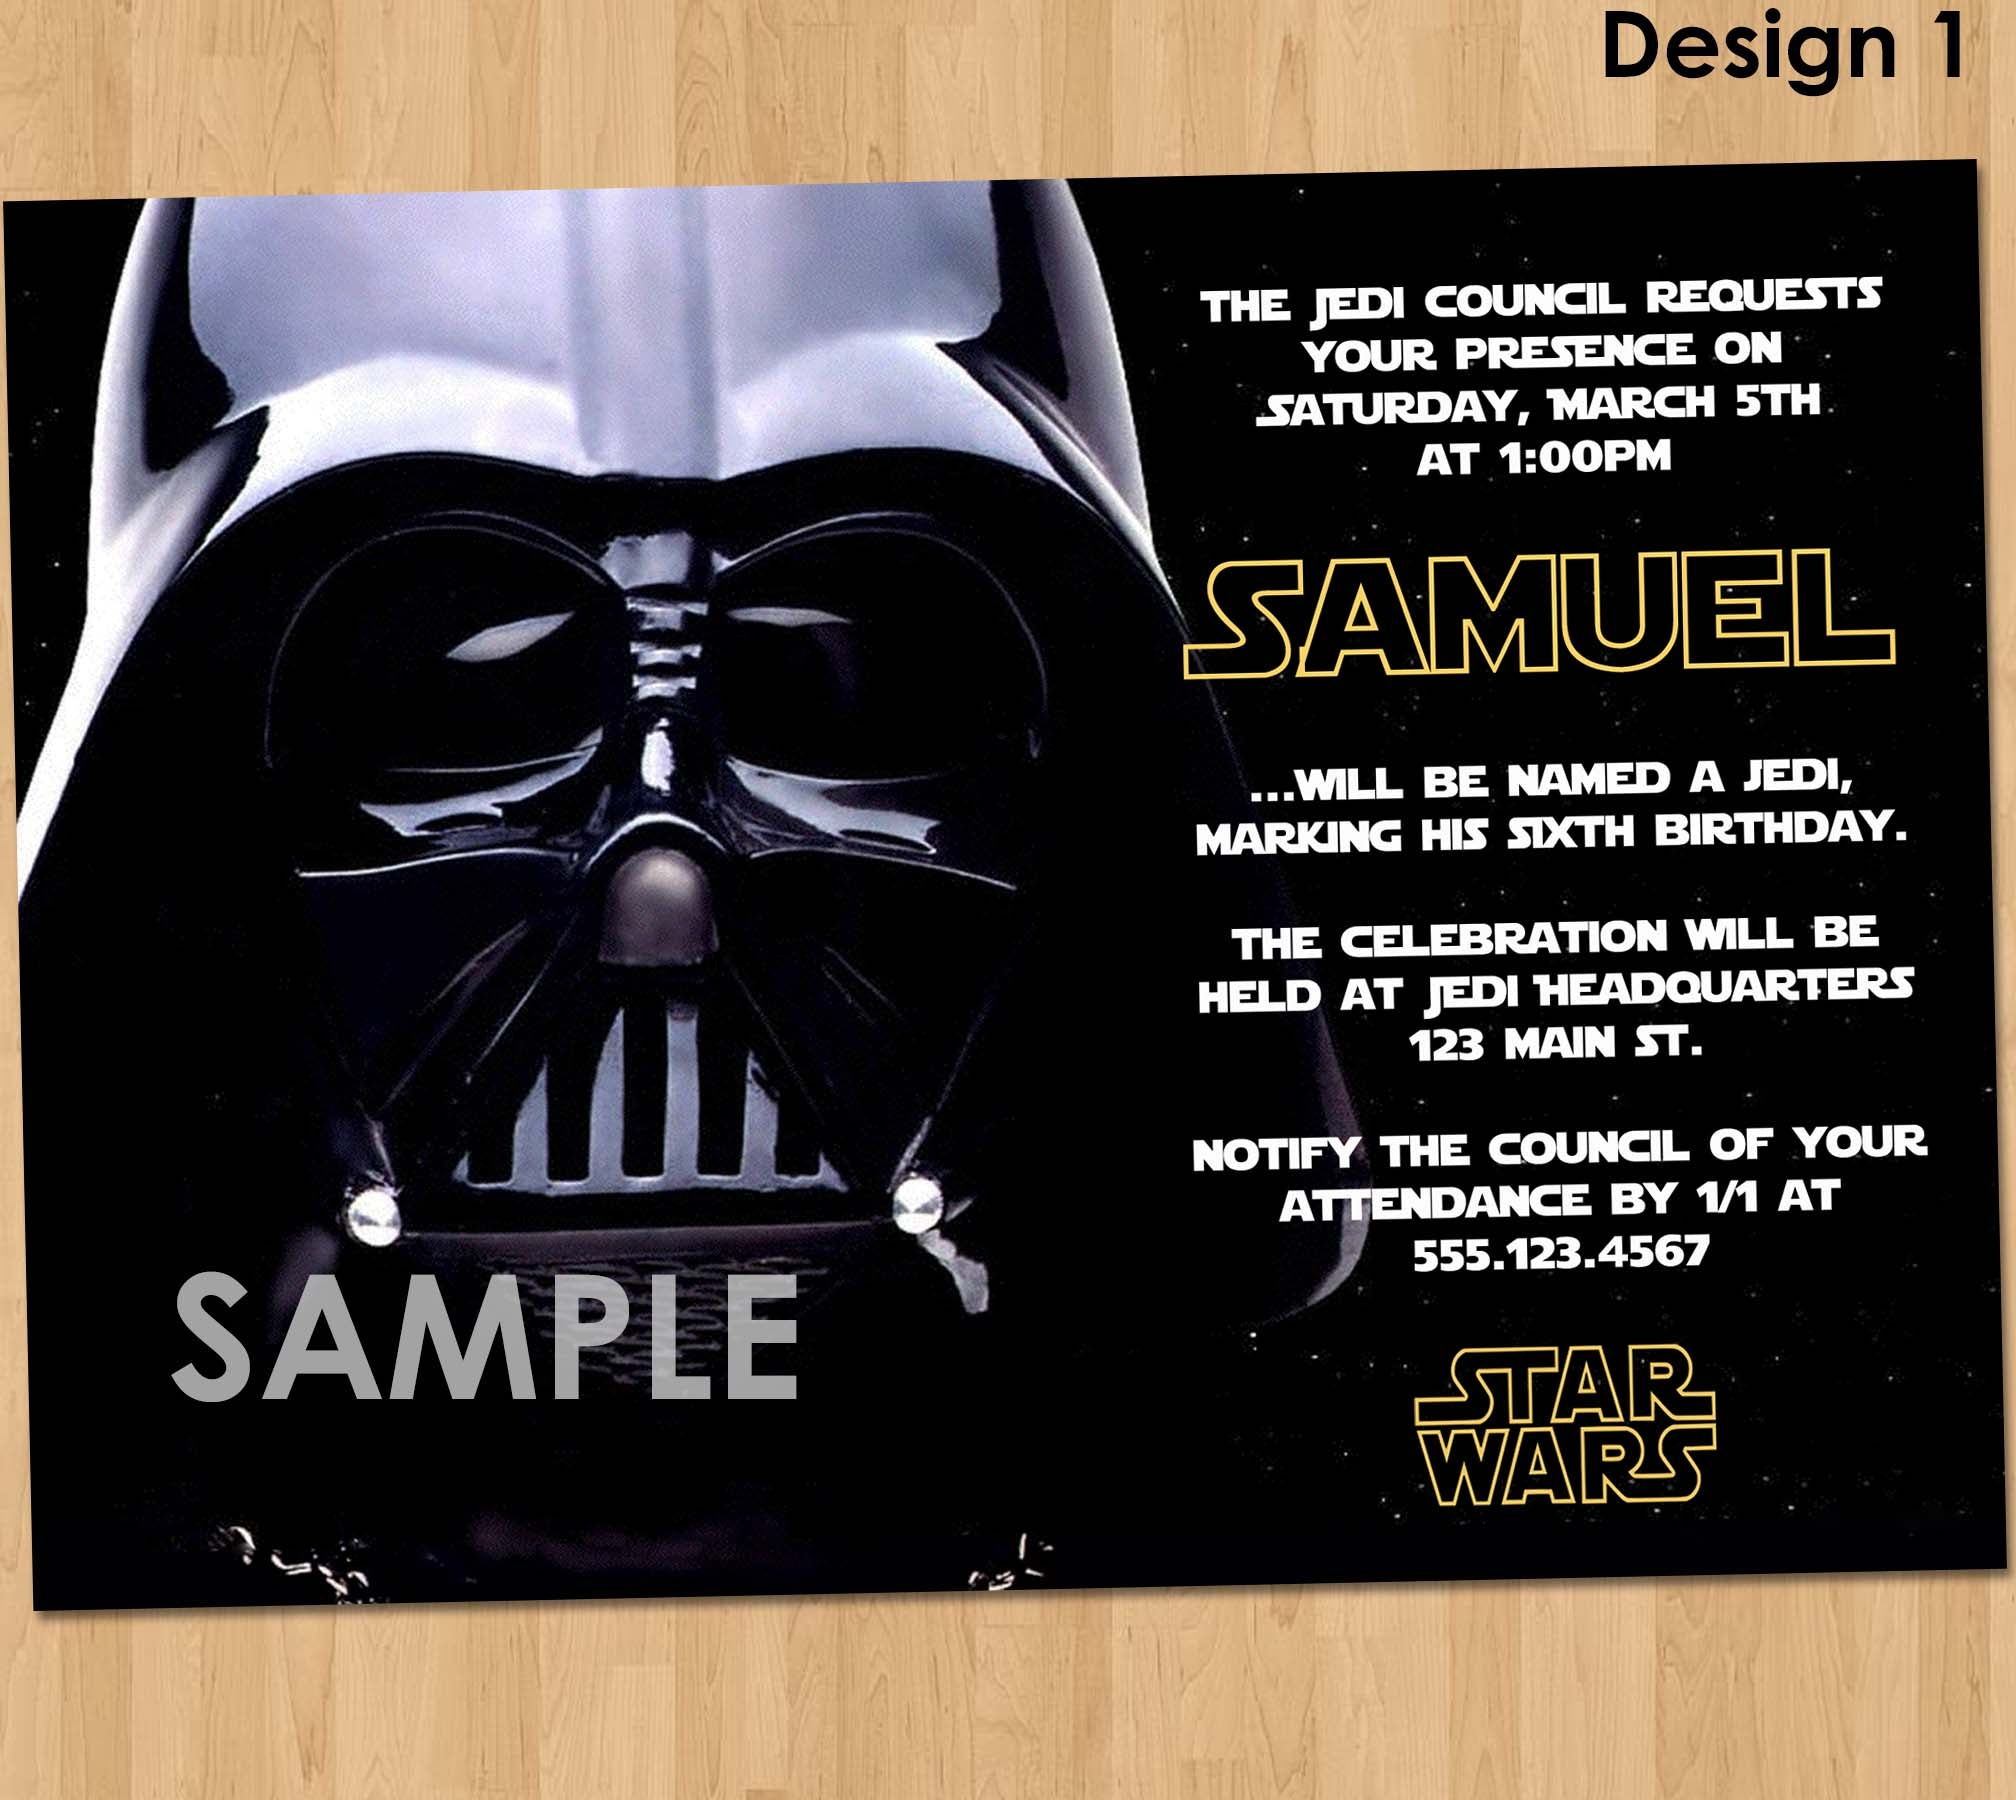 photograph relating to Printable Star Wars Birthday Invitations titled Star Wars Occasion Invitation - Star Wars Social gathering Printable - Star Wars Invitation - Star Wars Birthday Occasion - Darth Vader Birthday Occasion